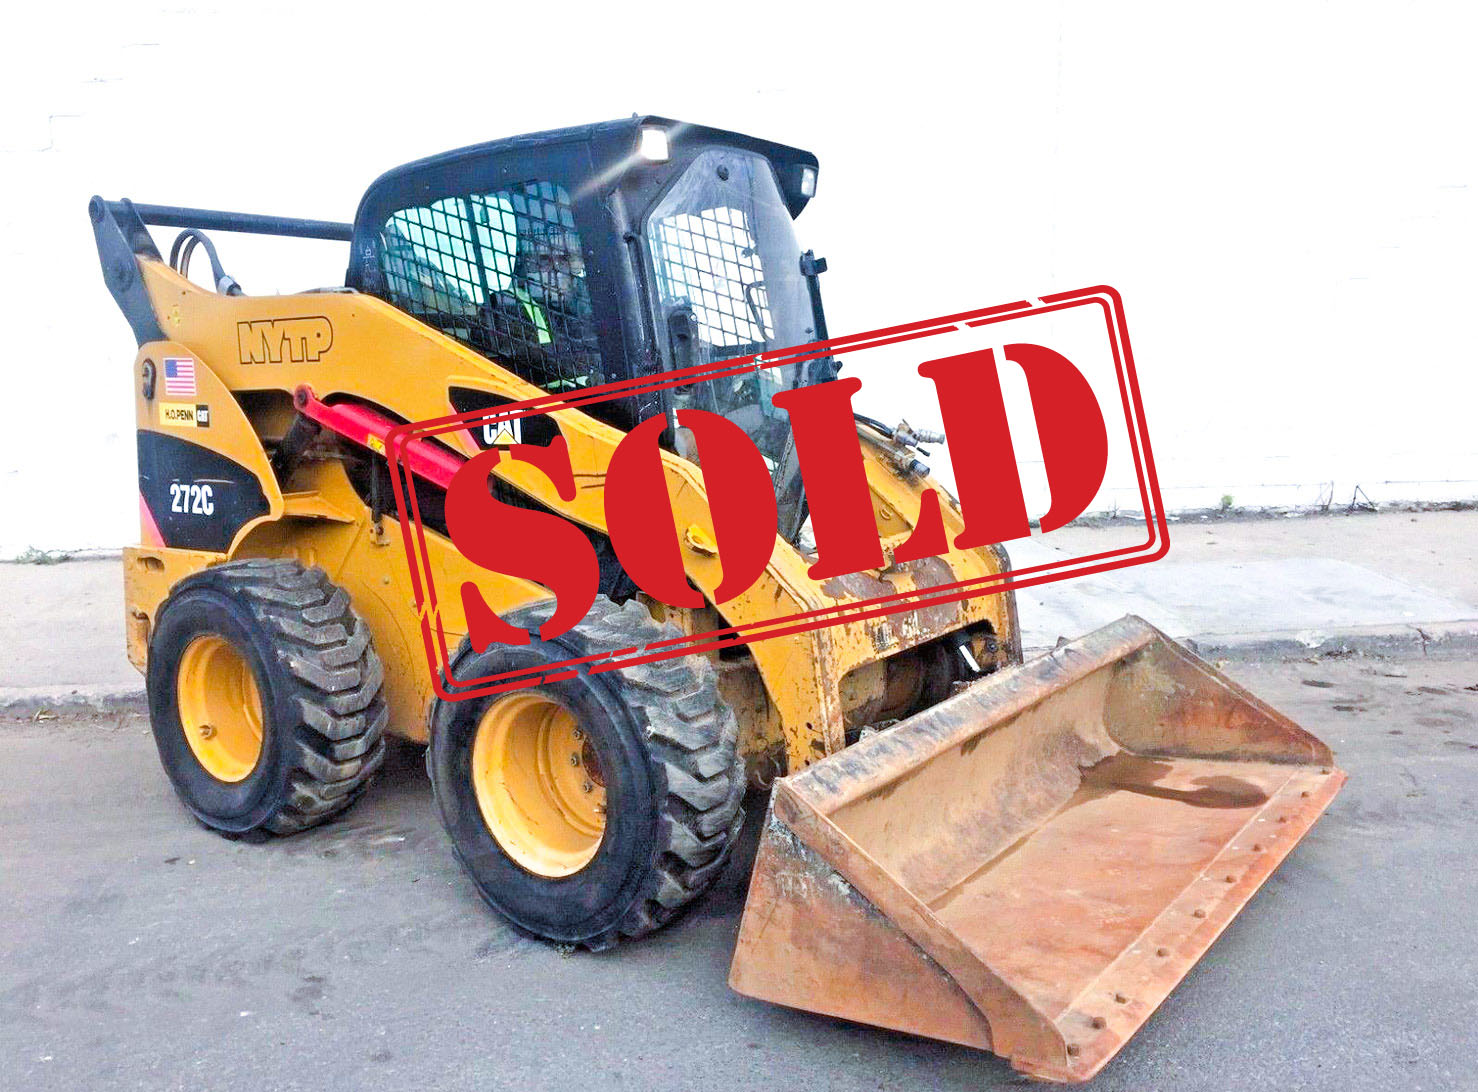 Used Construction Equipment for Sale NY, NJ, CT   Durante Rentals 1